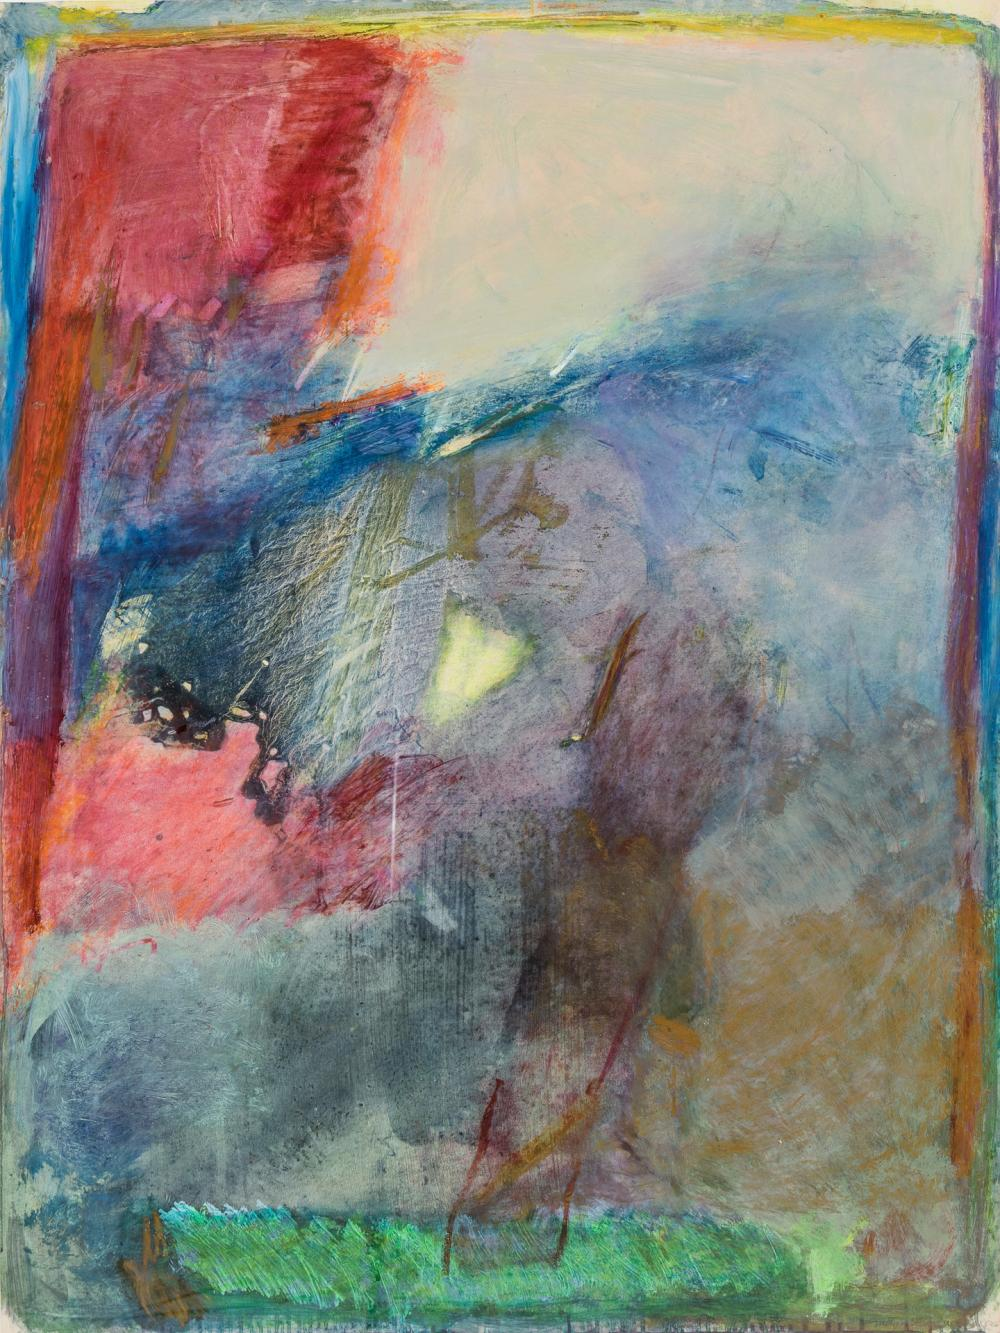 """EMILY MASON, American (1932-2019), Untitled, oil on paper, signed, inscribed and dated in pencil lower right """"Emily Mason NYC 1986-8..."""